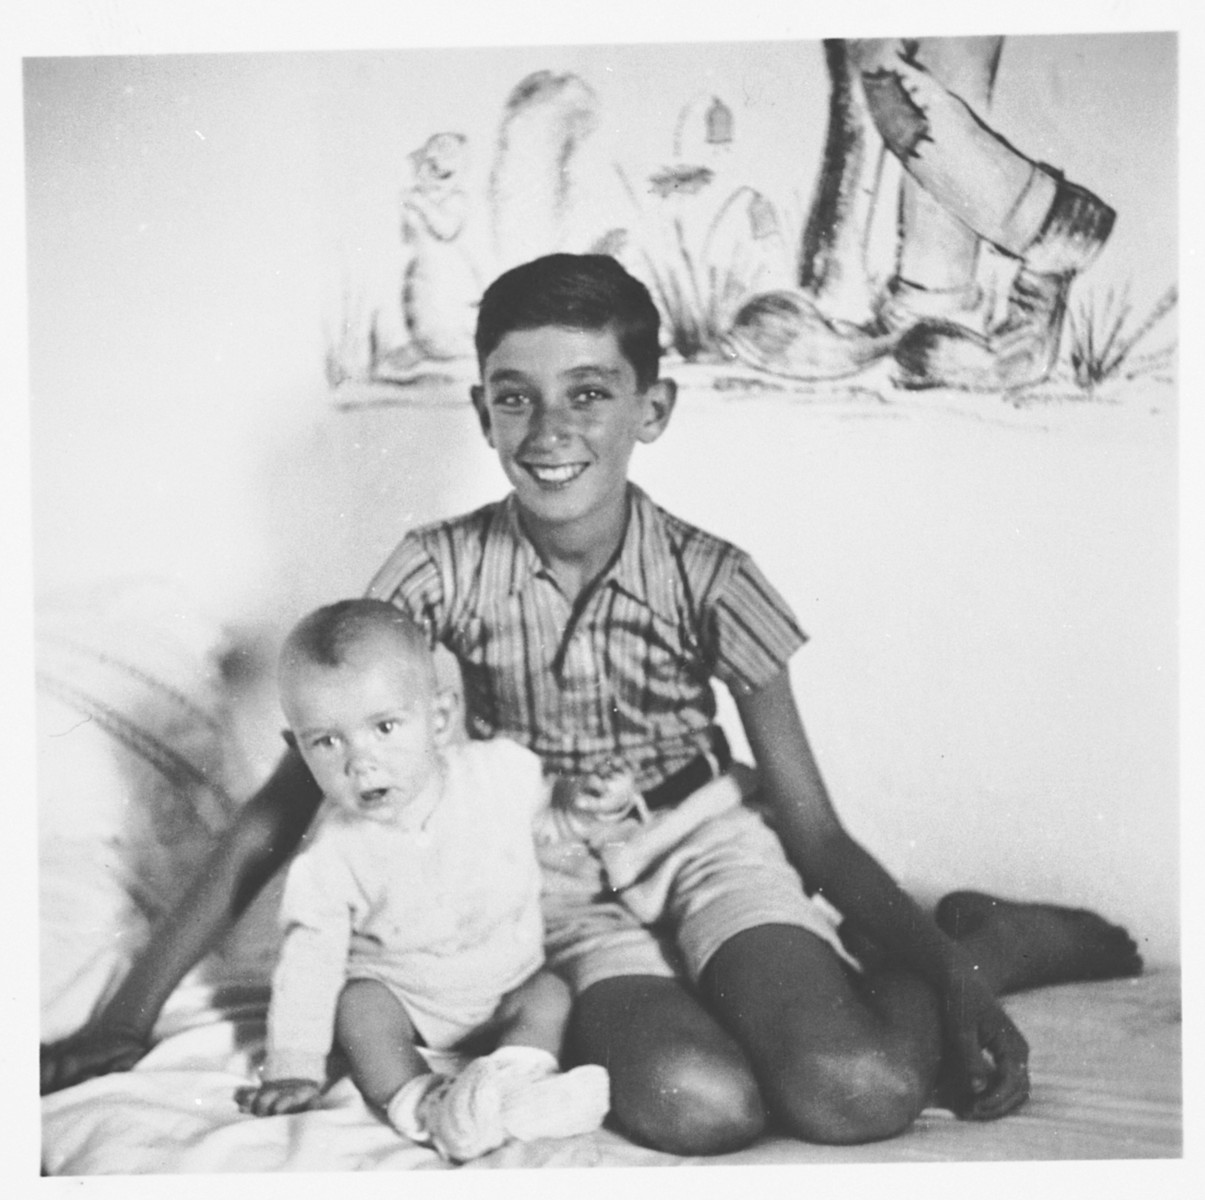 Two children pose on a bed in the Ferramonti internment camp.  The baby's name was Walter.  This photograph was taken during a visit to the camp by Rabbi Pacifici.